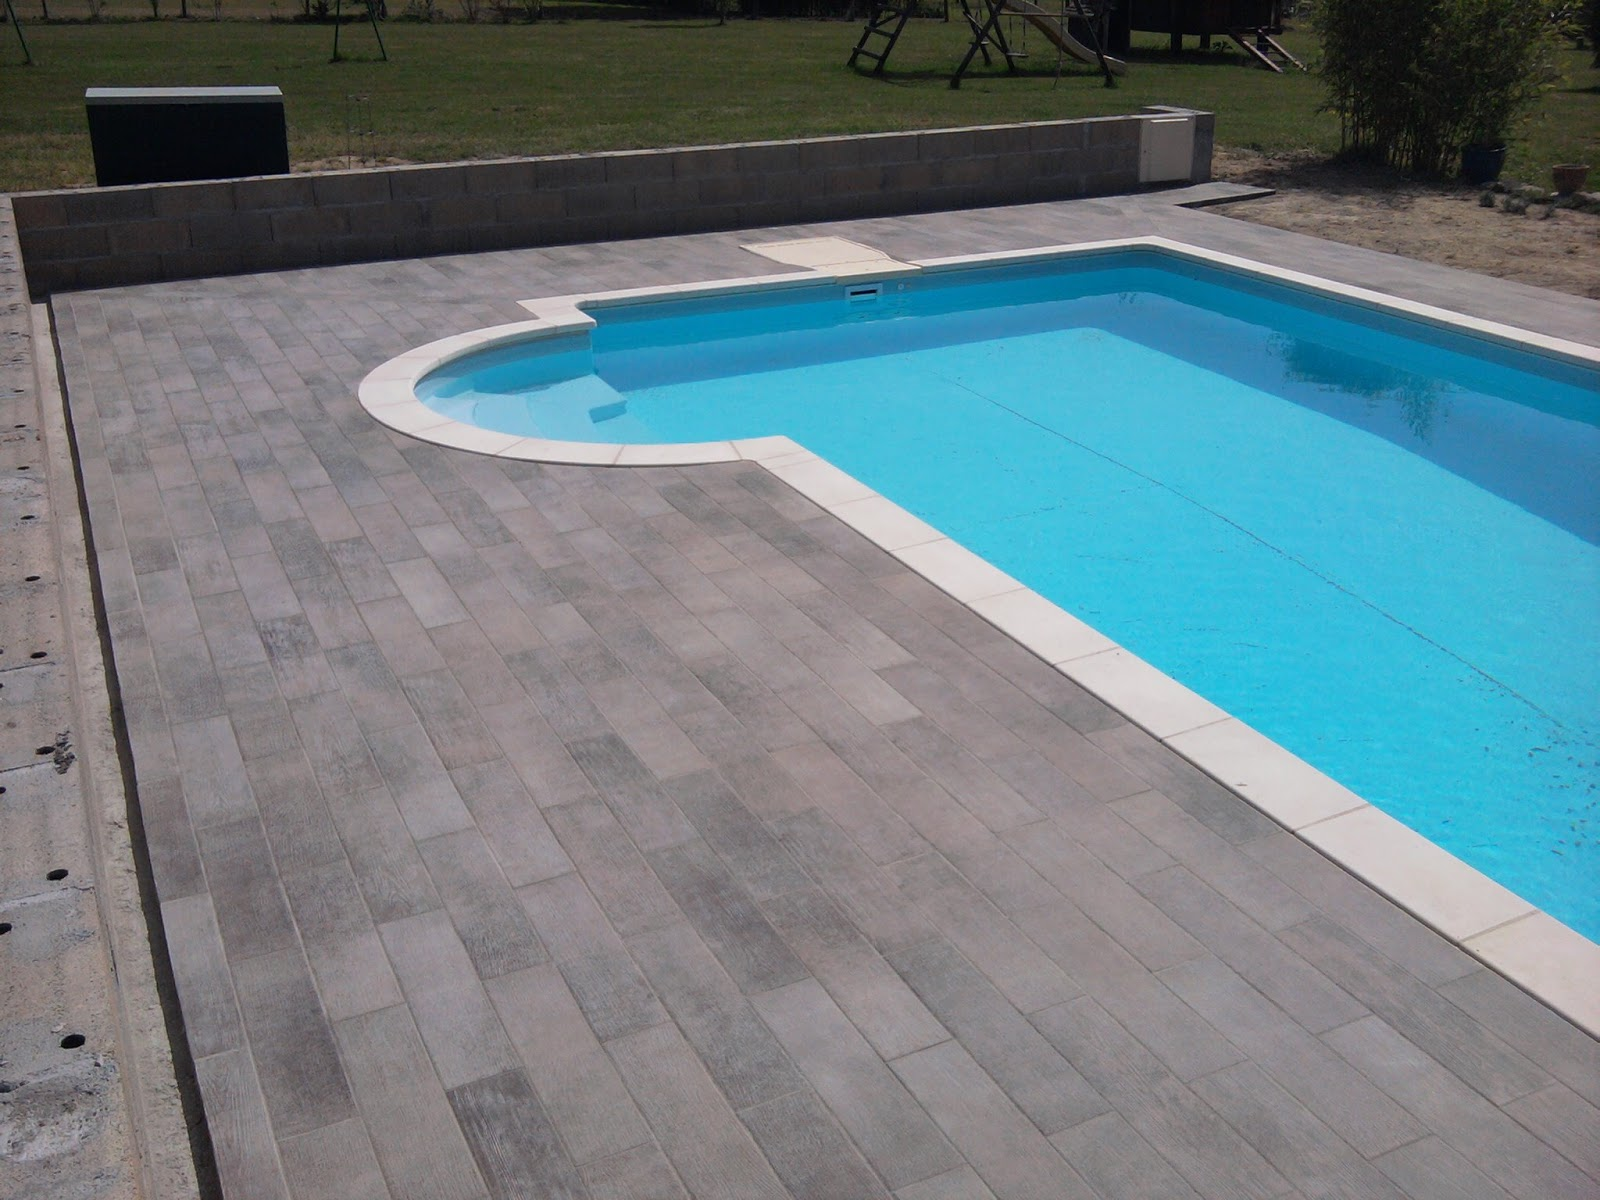 Carrelage autour de la piscine 28 images terrasse for Carrelage piscine